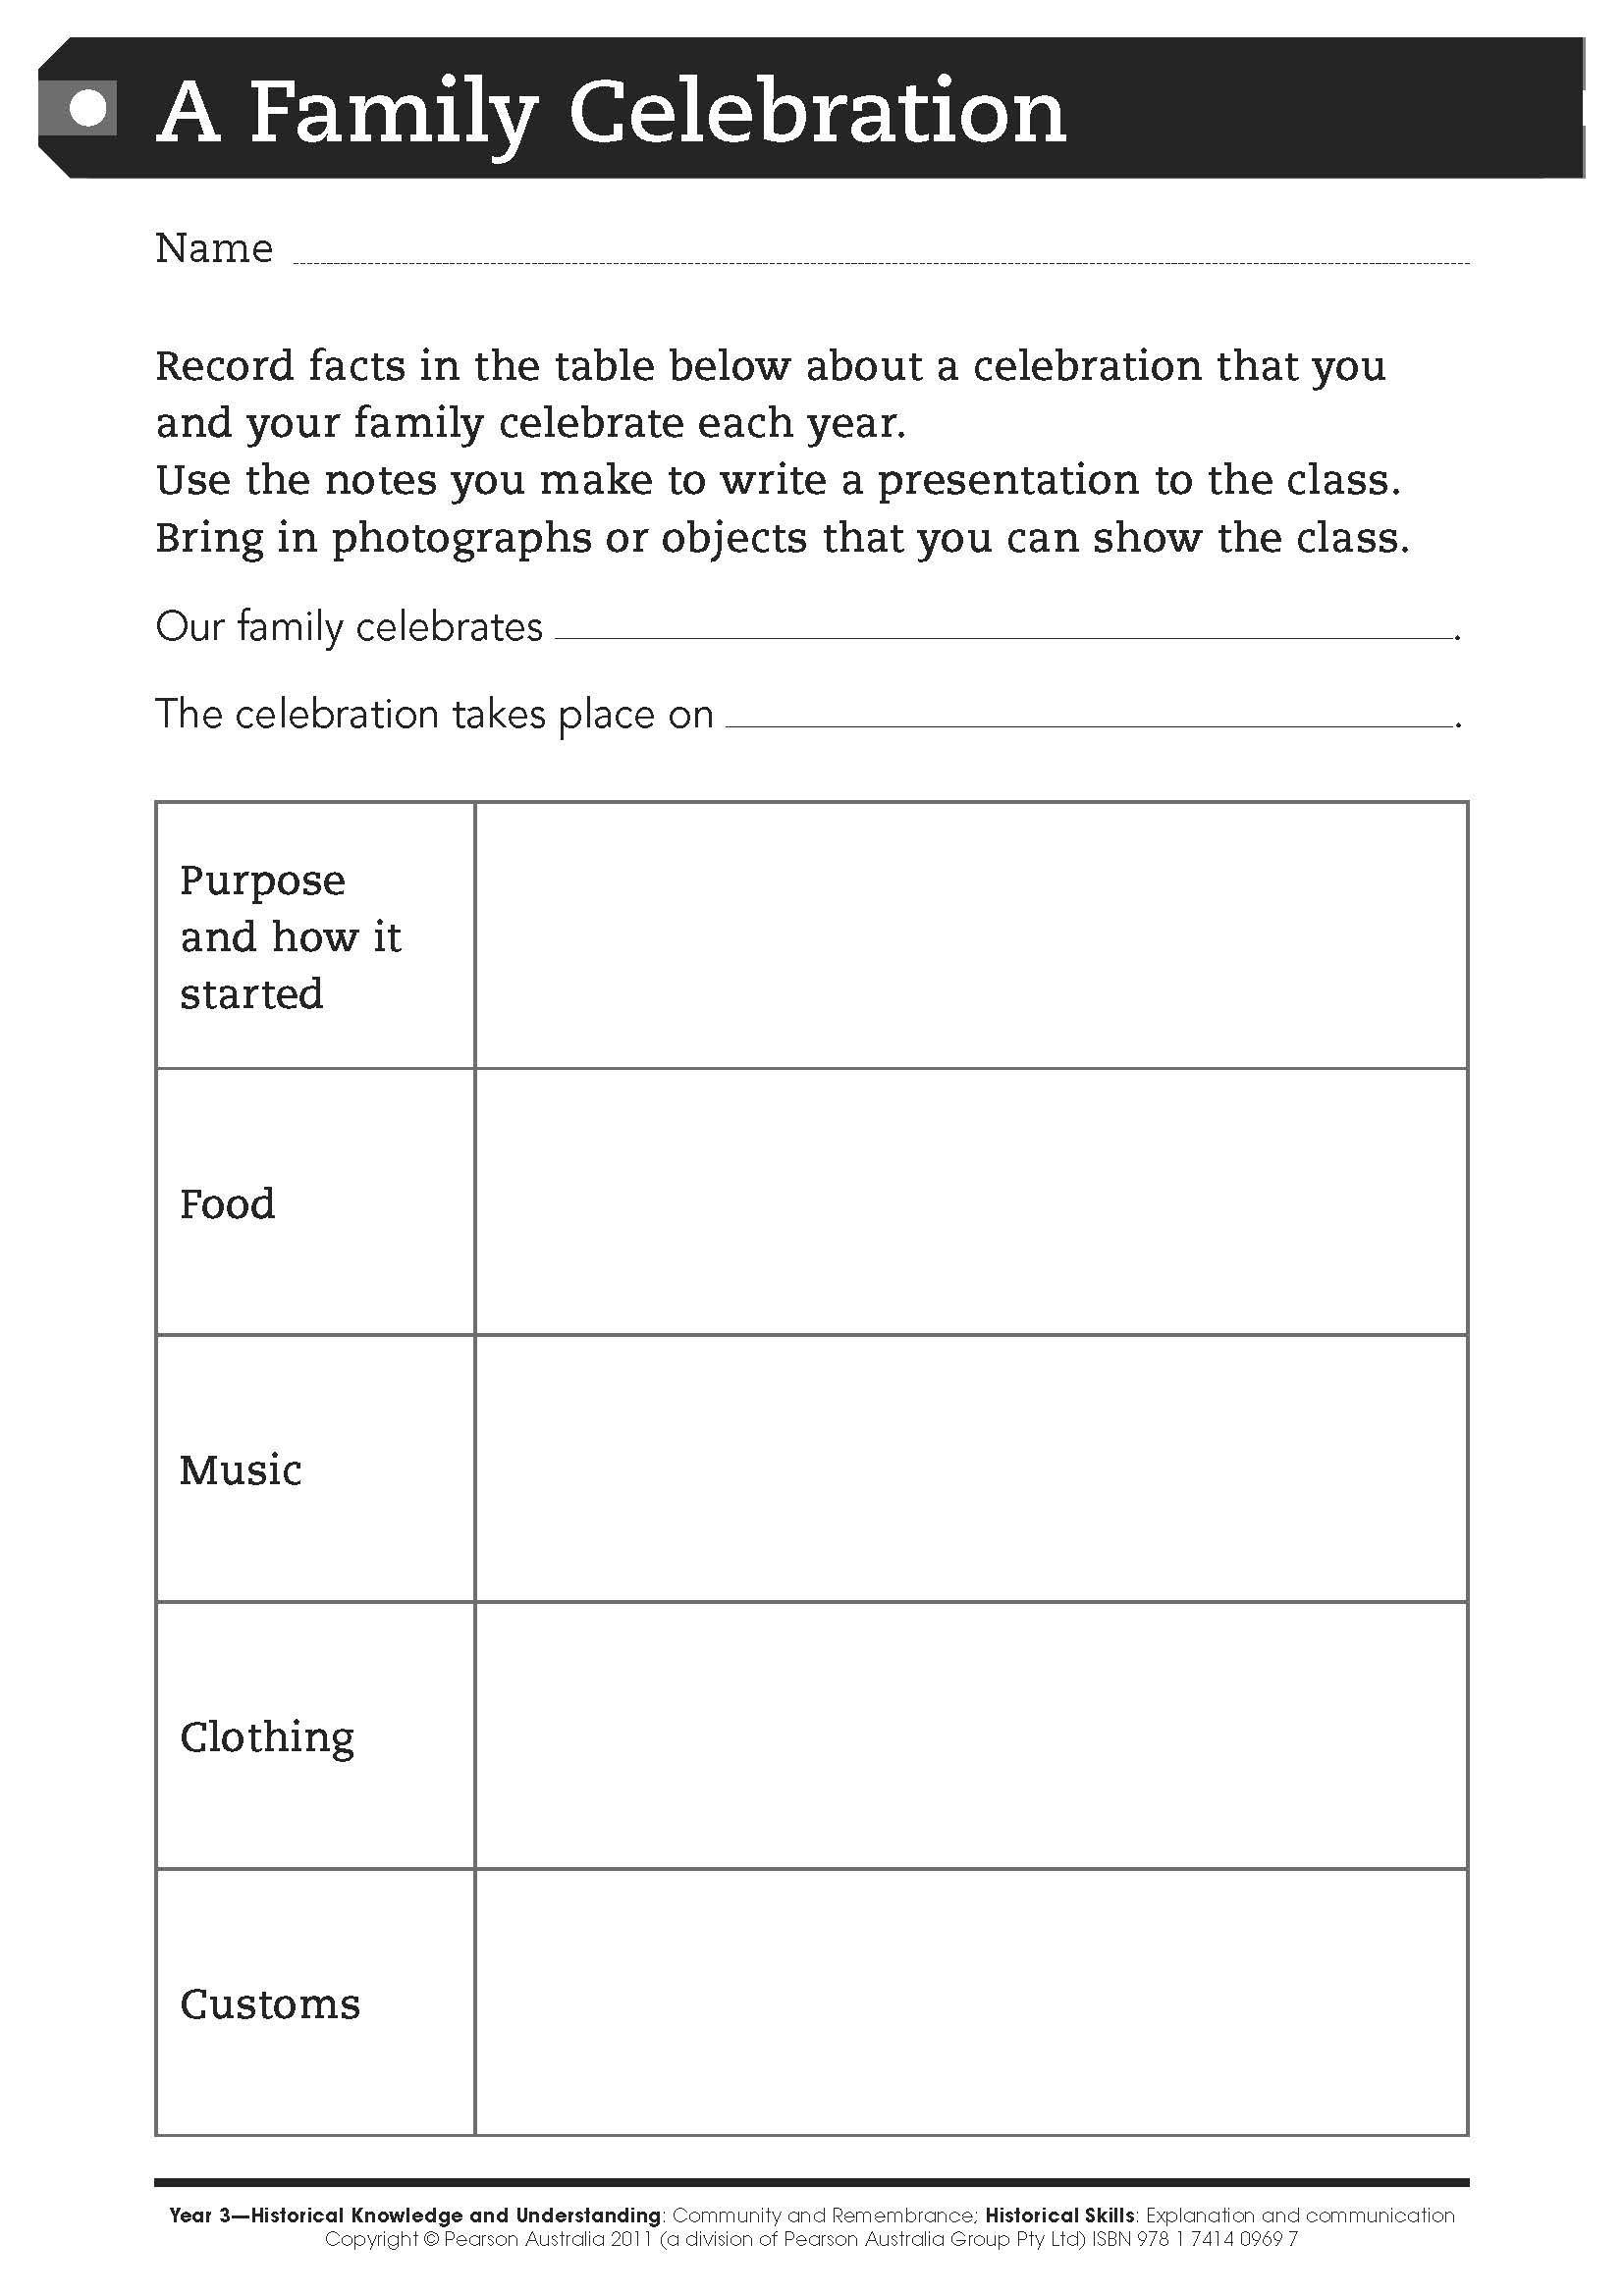 Free Worksheet A Family Celebration For Middle Primary